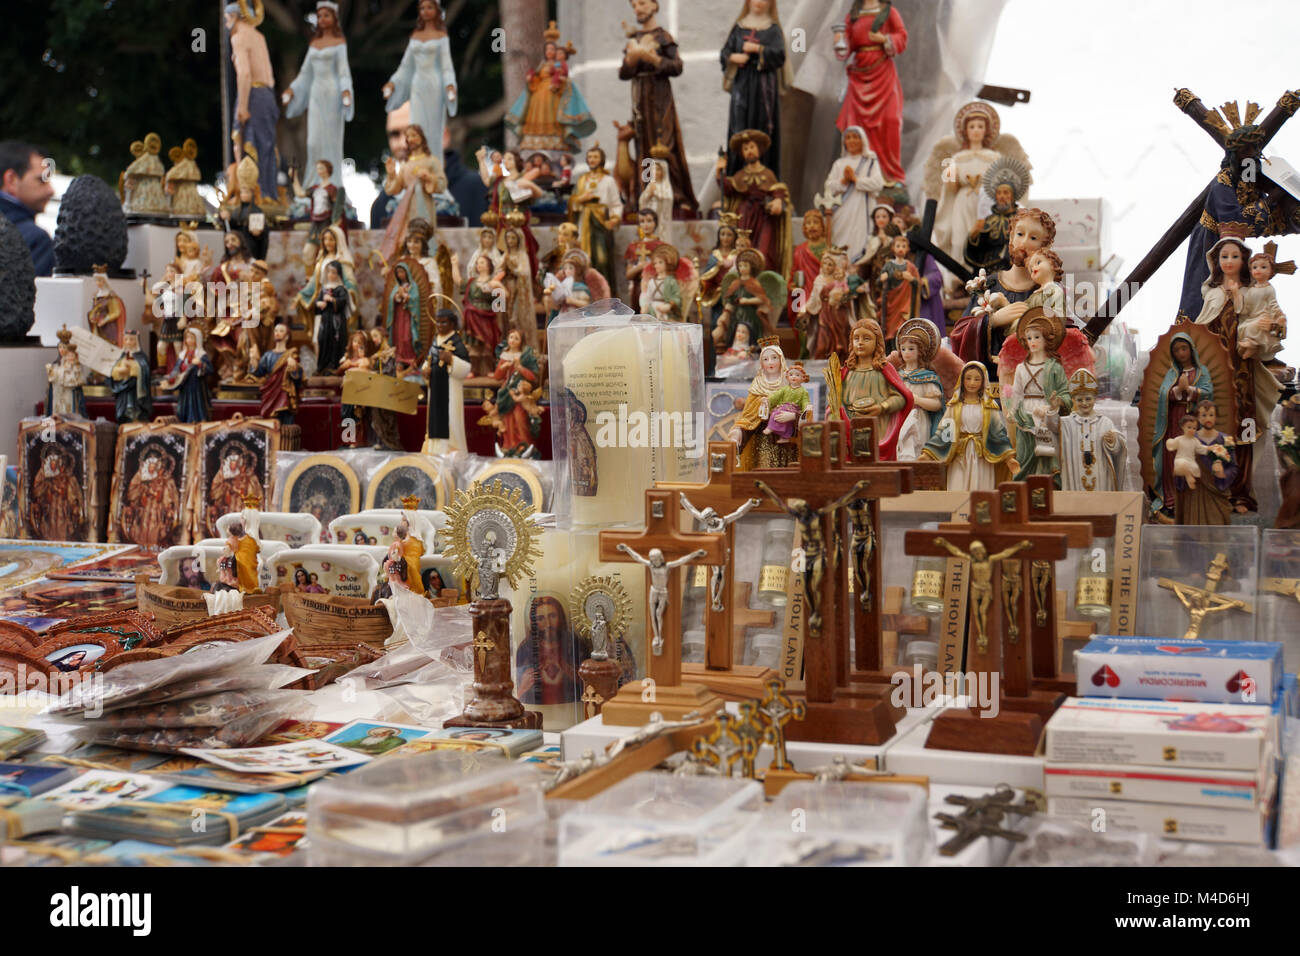 devotional objects on sunday market in Teror around the basilica - Stock Image